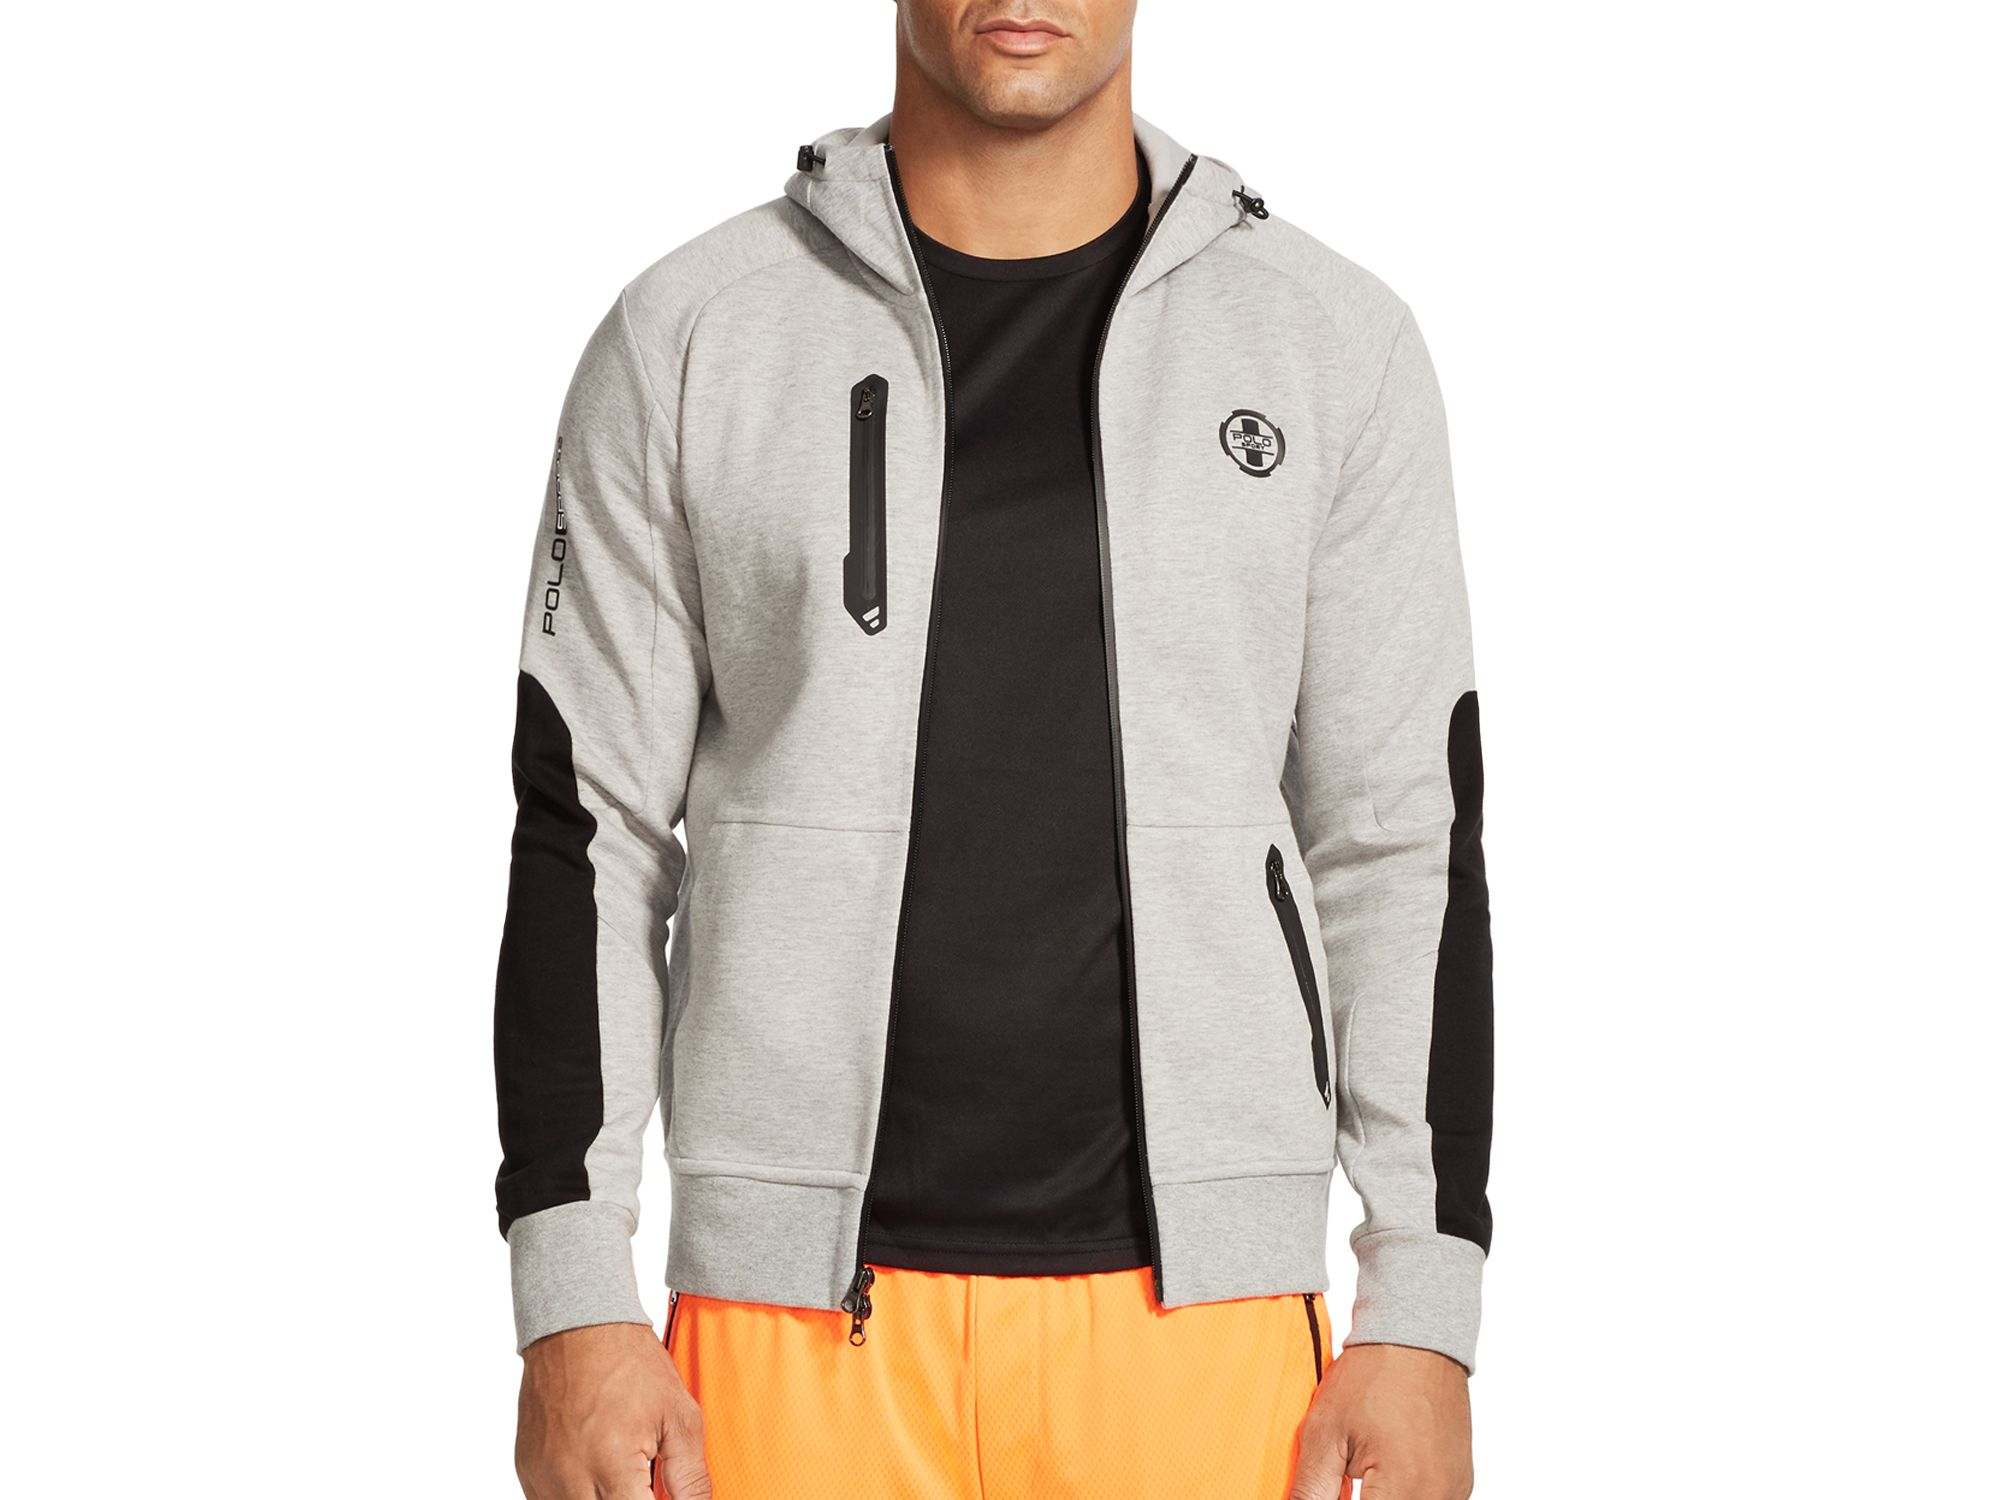 polo ralph lauren double knit full zip hoodie in gray for. Black Bedroom Furniture Sets. Home Design Ideas